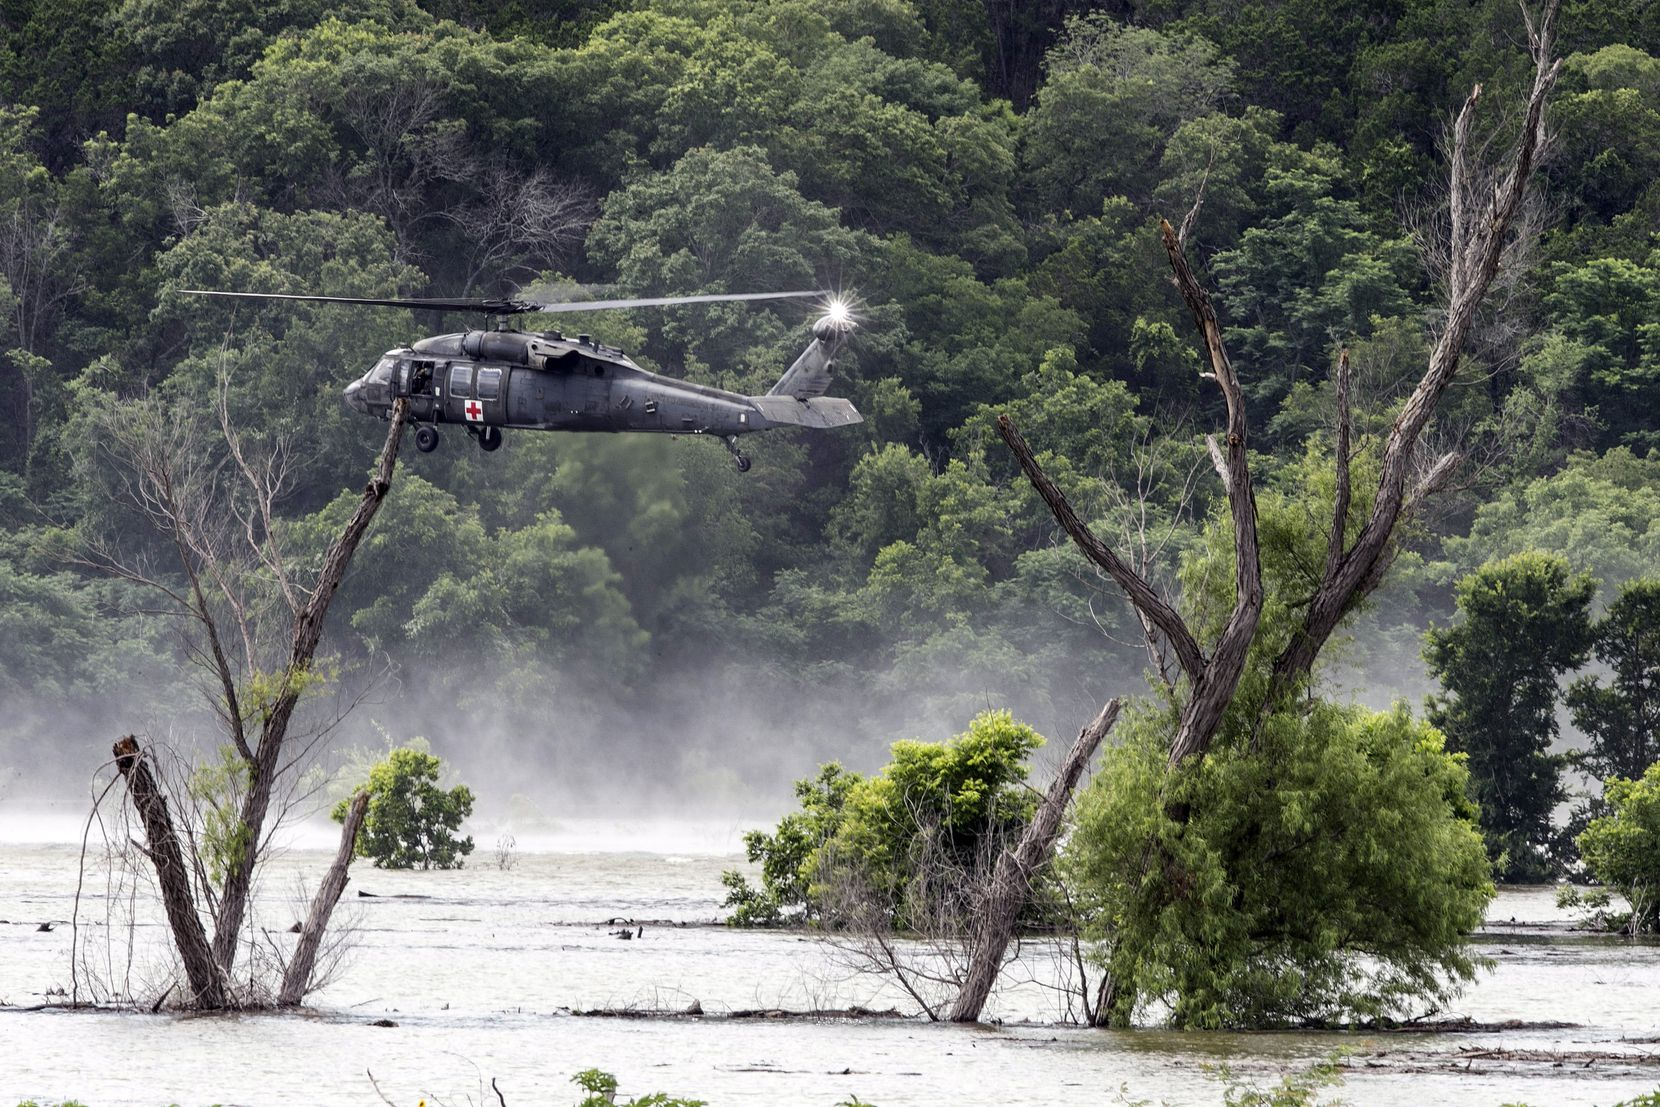 An Army helicopter hovered above Lake Belton on June 3, 2016, during the search for missing soldiers from Fort Hood. They were swept away as their truck went through a low-water crossing during training.